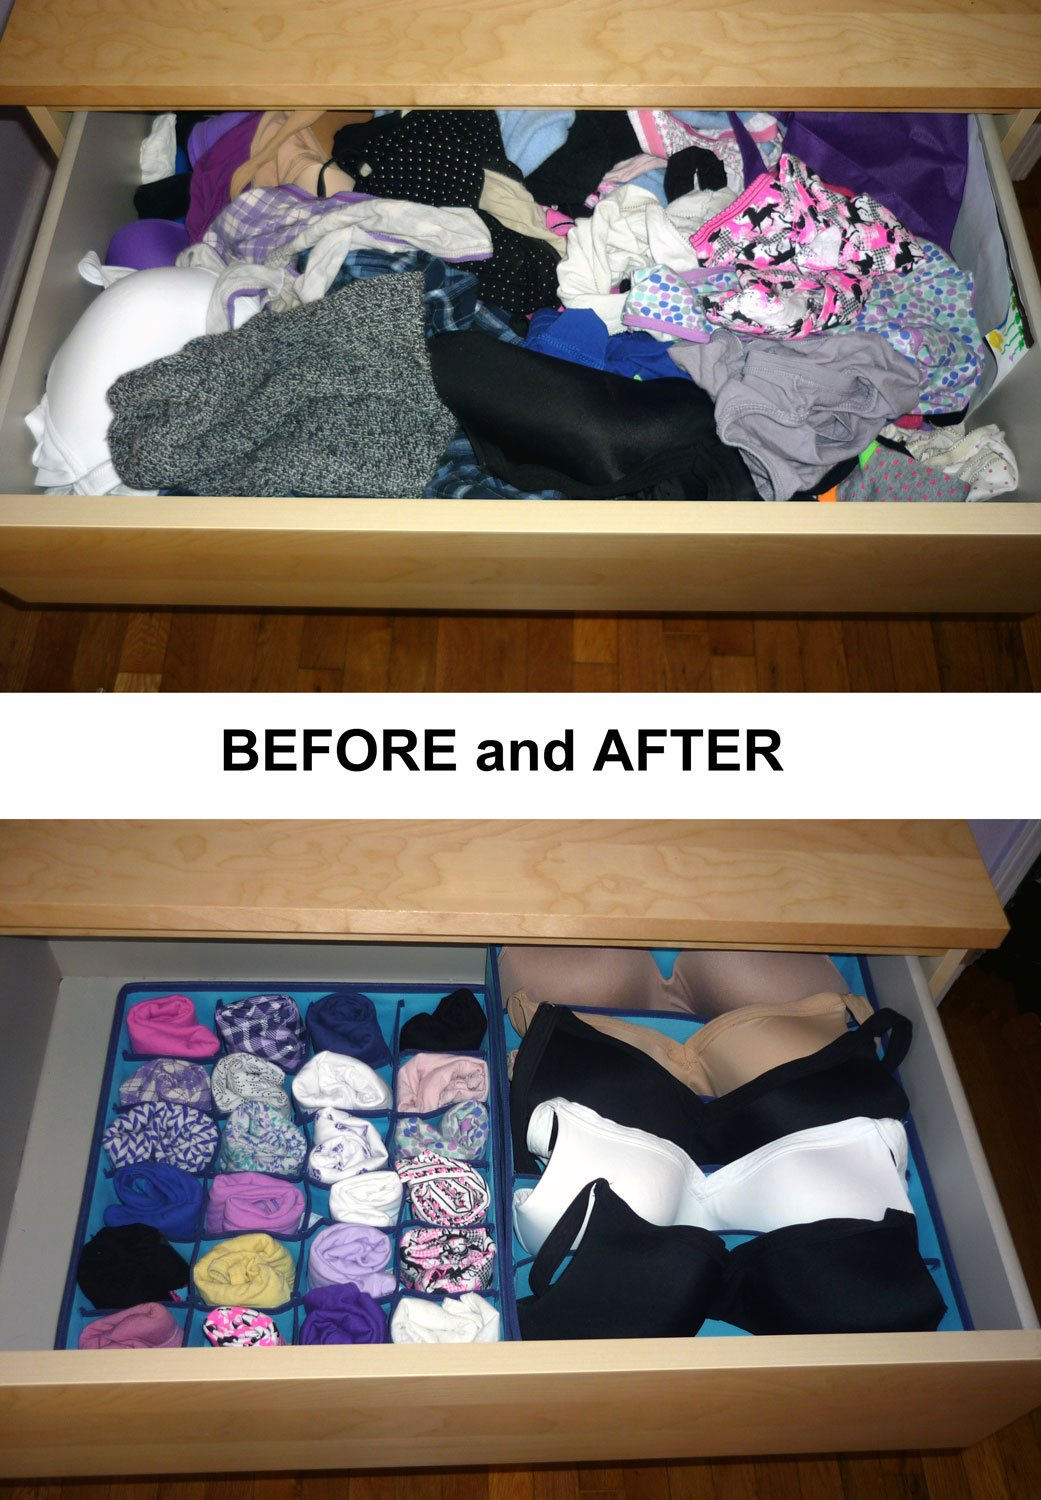 Best Underwear Organizer for College Dorm, Aqua Blue Dresser Organizer for Girls Bras up to Size 42D, Four Collapsible Boxes, Great for Organizing Socks, Lingerie by Mirella's House (Image #8)